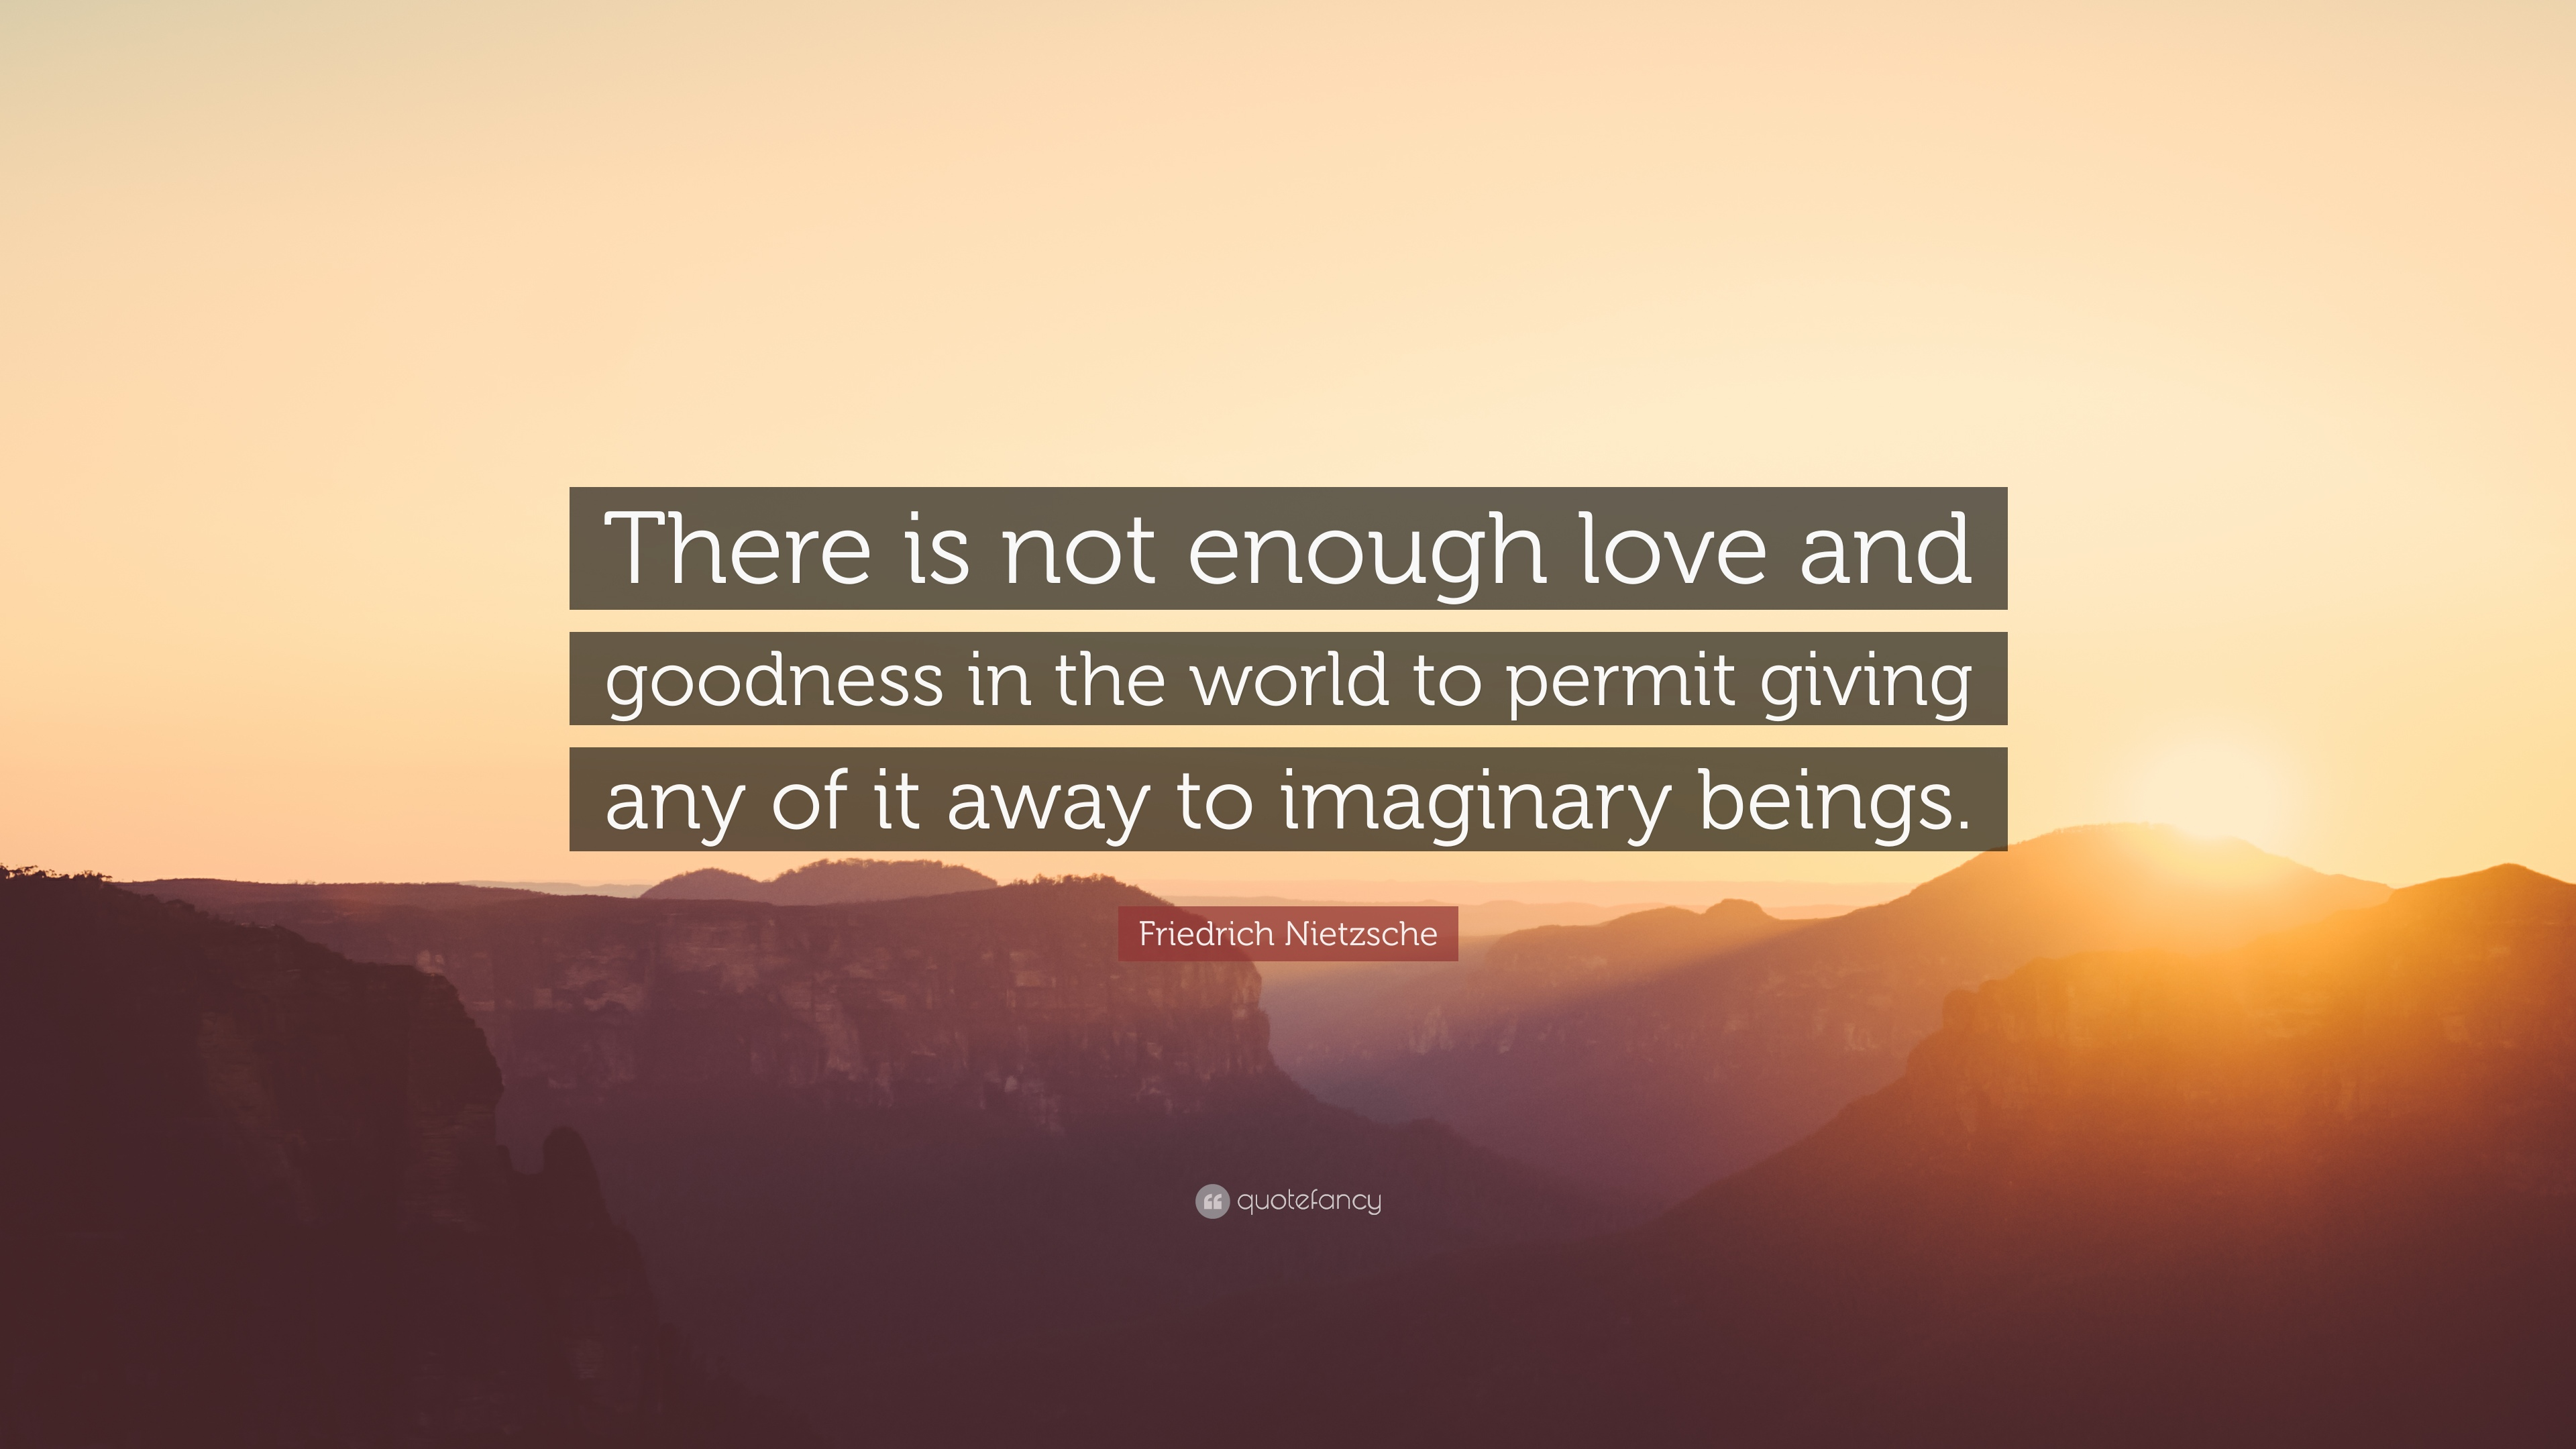 Friedrich Nietzsche Quote There Is Not Enough Love And Goodness In